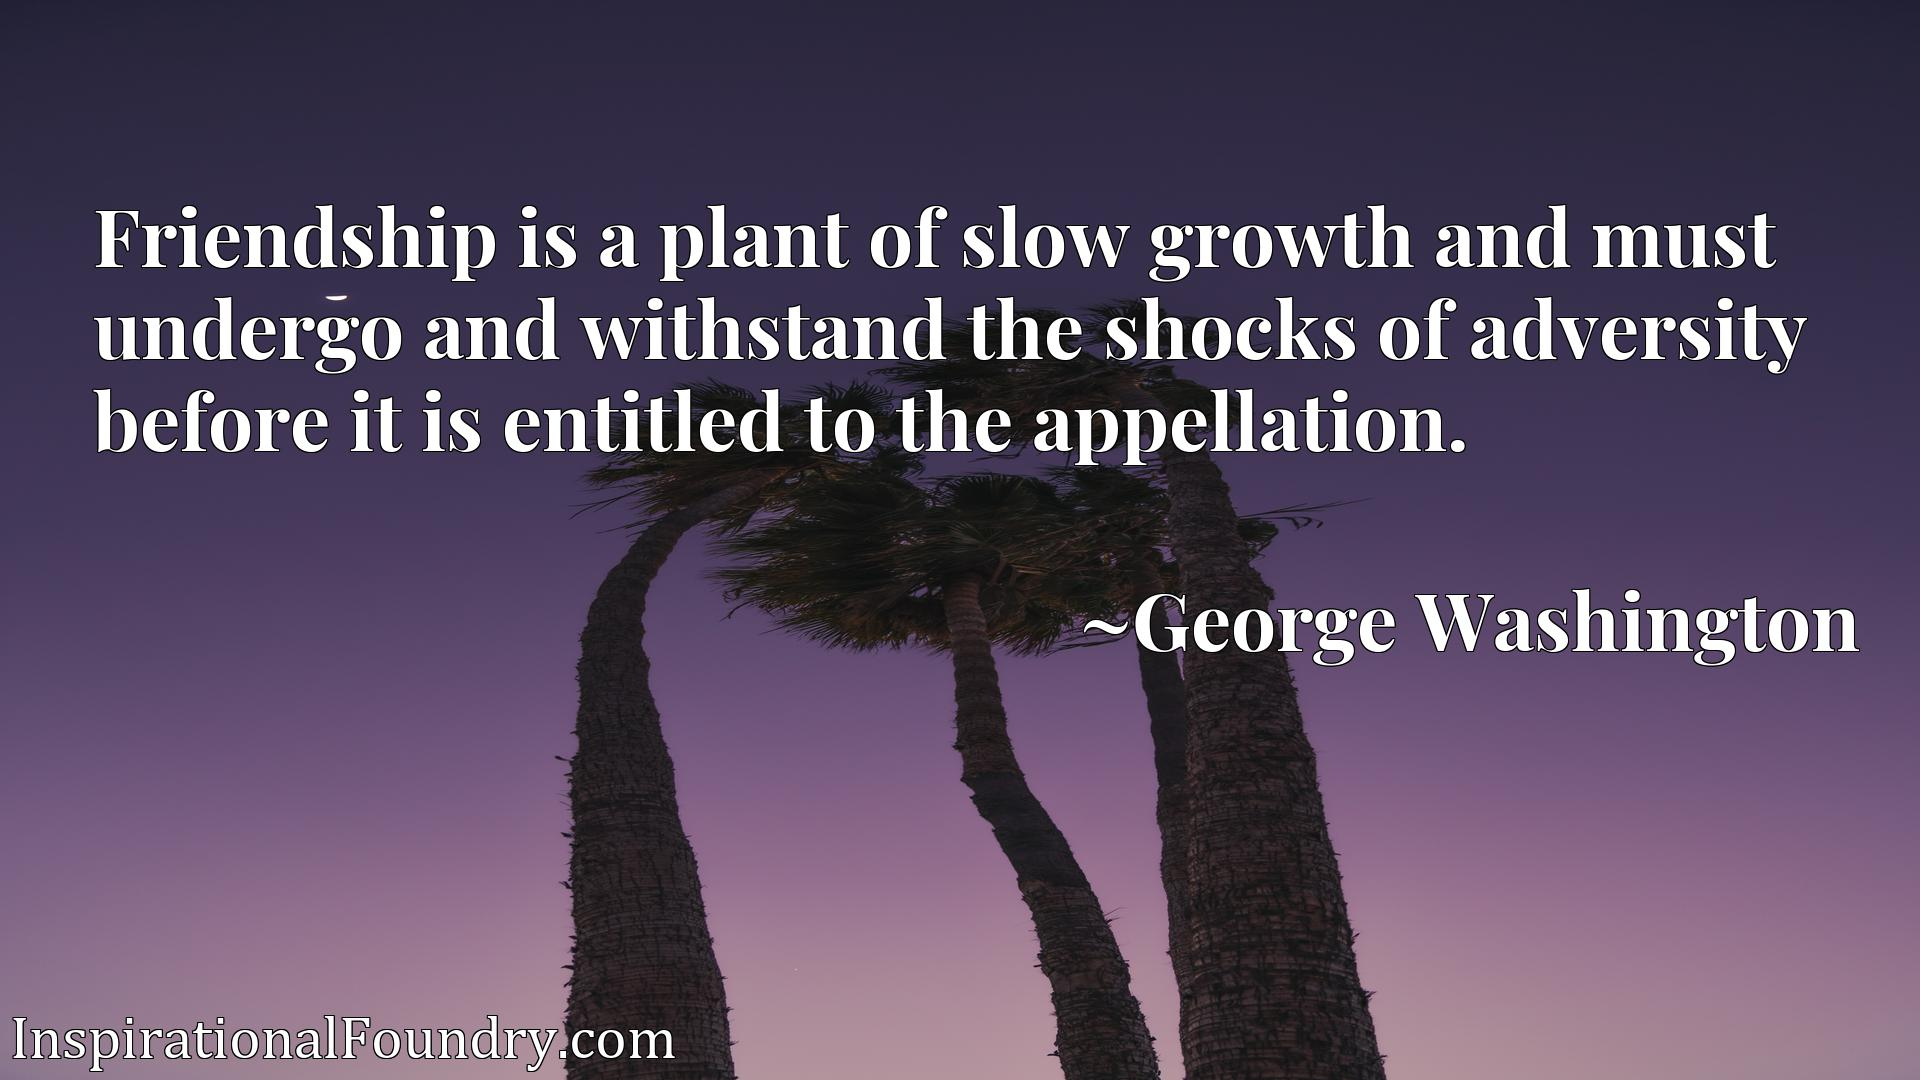 Quote Picture :Friendship is a plant of slow growth and must undergo and withstand the shocks of adversity before it is entitled to the appellation.